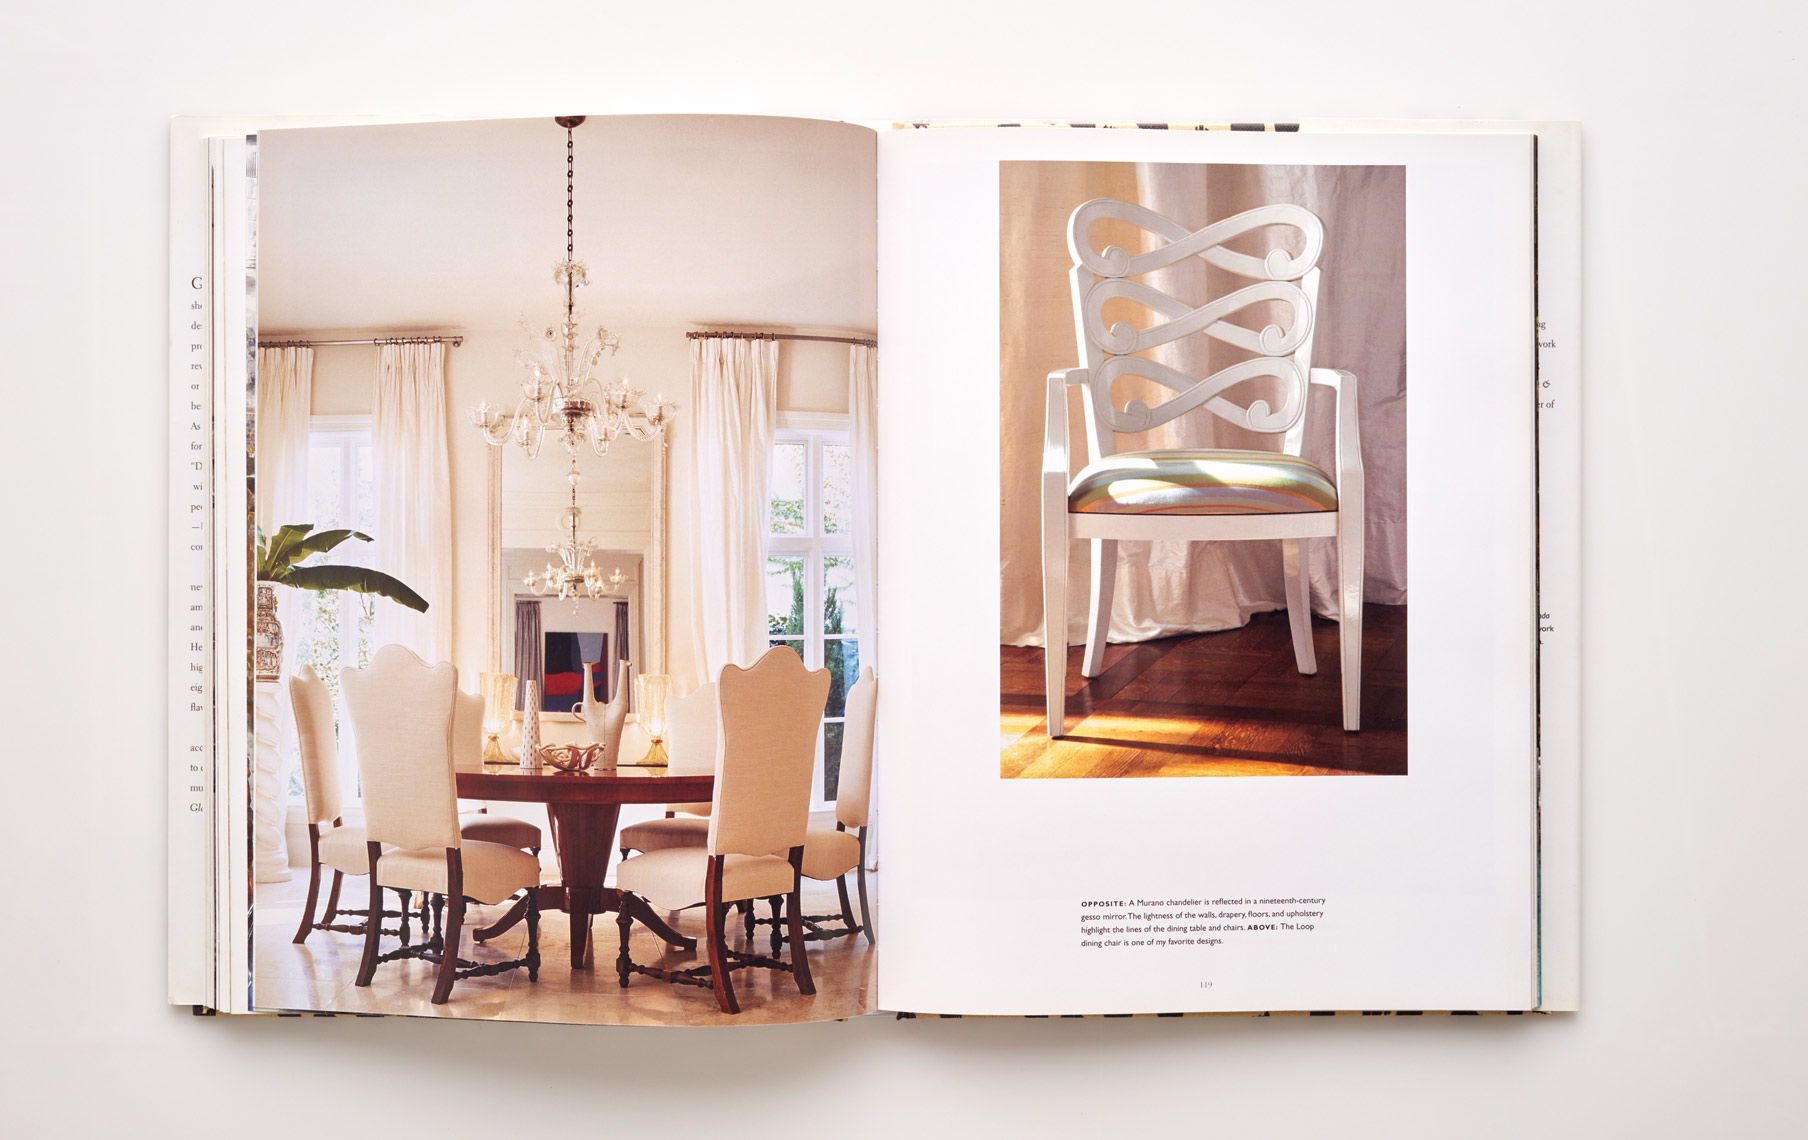 Stephen Karlisch Jan Showers Glamorous Rooms Contemporary Dining